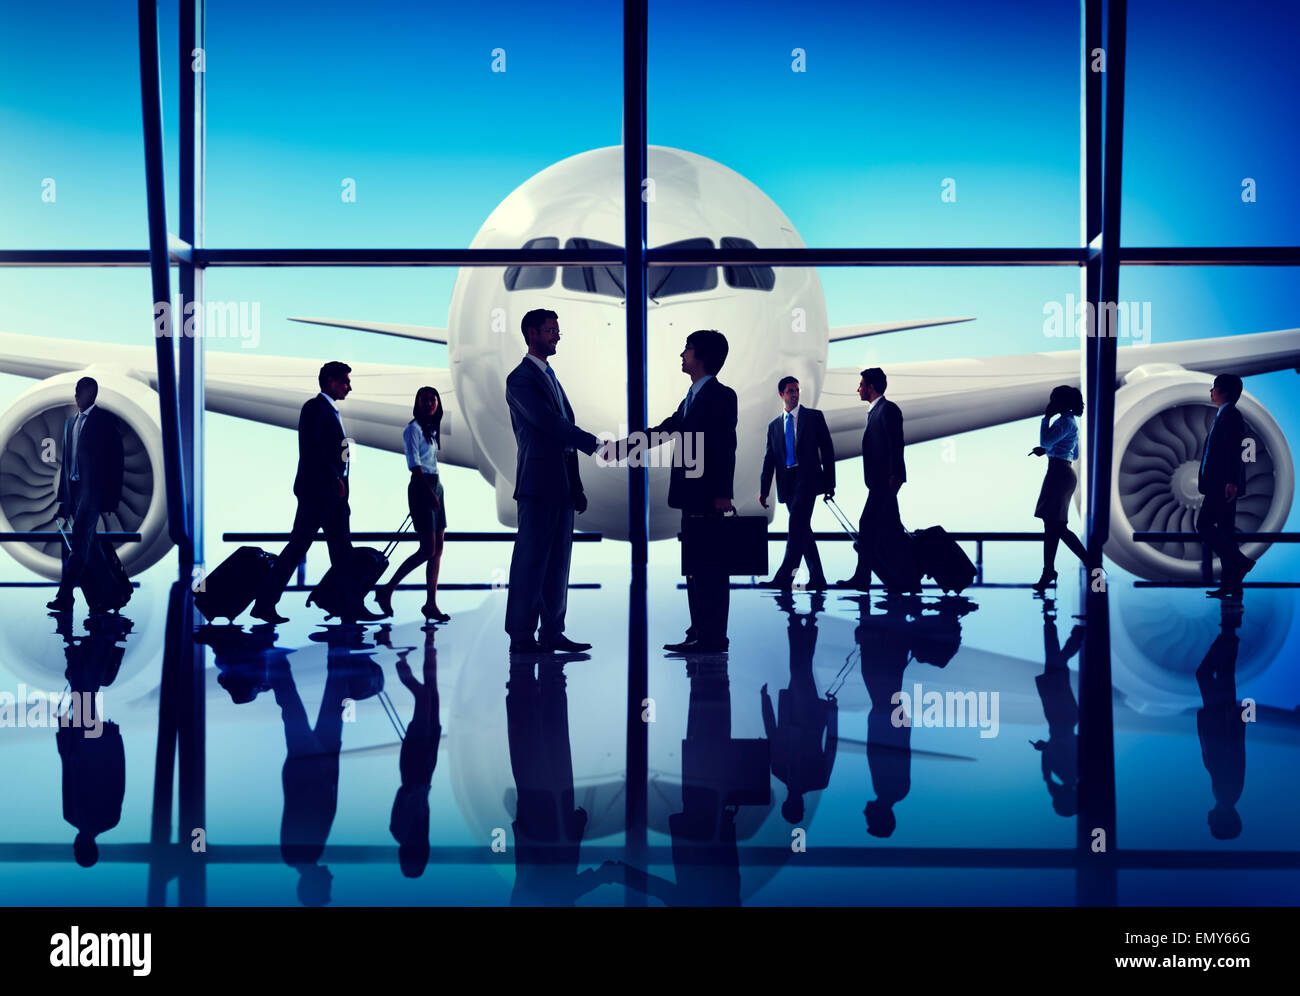 Free Images Traveling People Airport Bridge Business: Business People Travel Handshake Airport Concept Stock